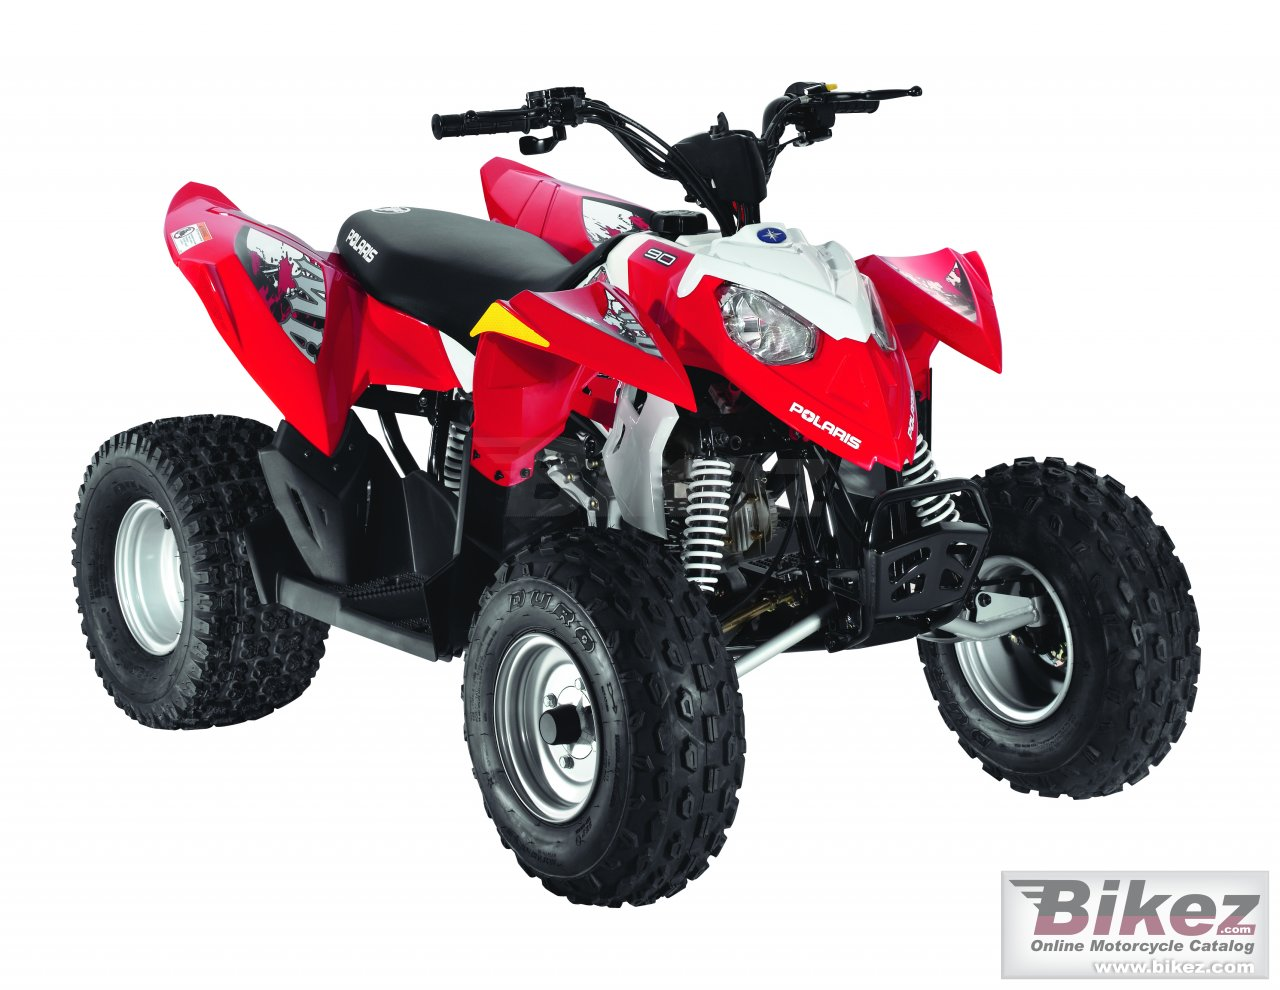 Big Polaris outlaw 90 picture and wallpaper from Bikez.com